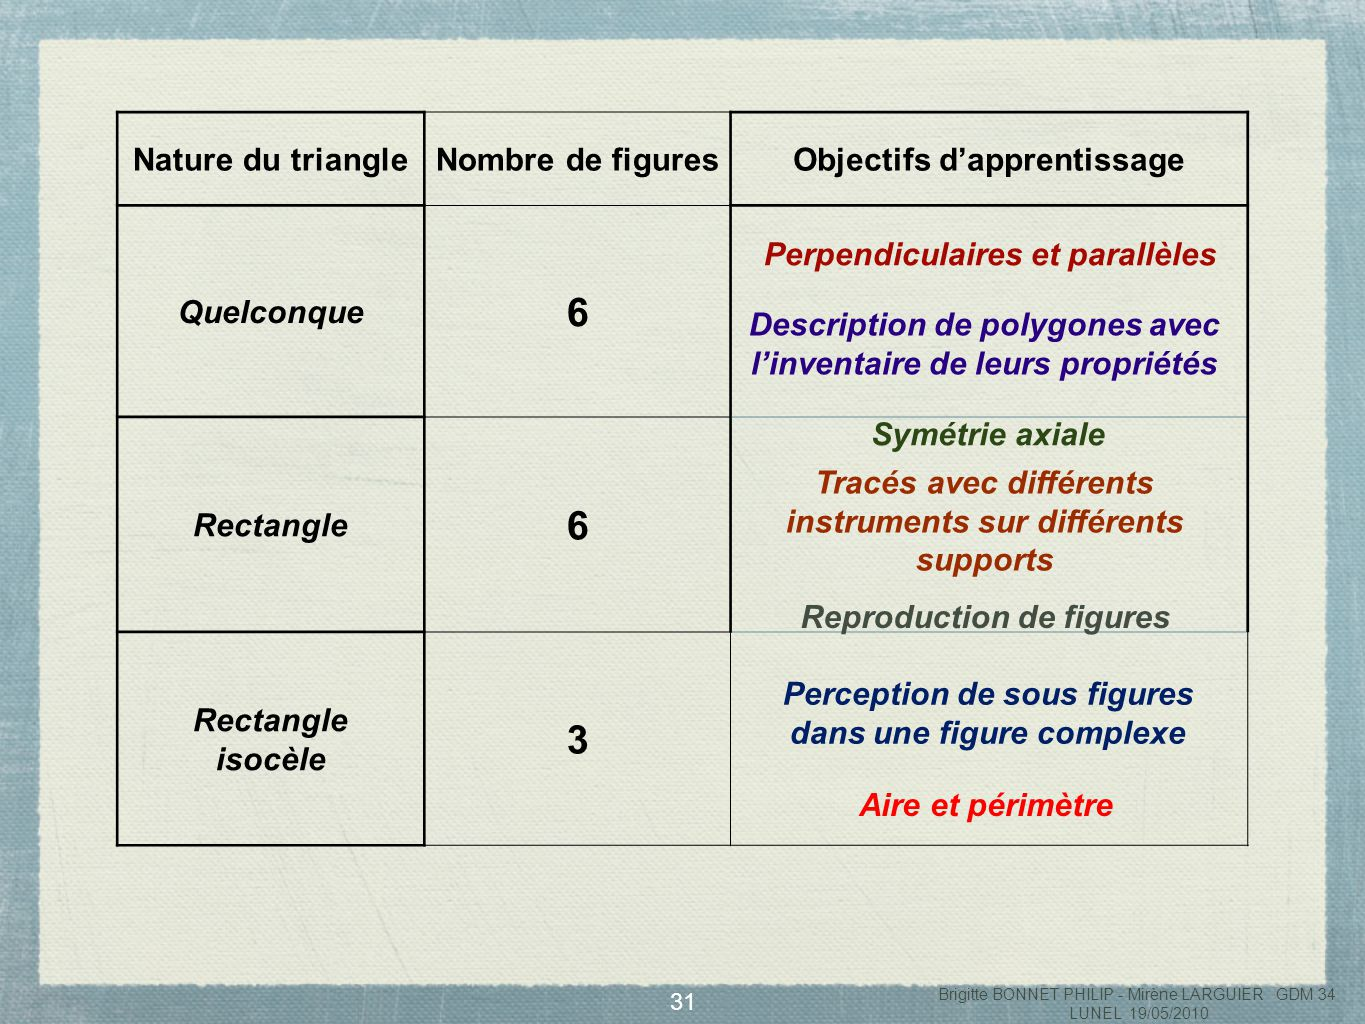 6 3 Nature du triangle Nombre de figures Objectifs d'apprentissage